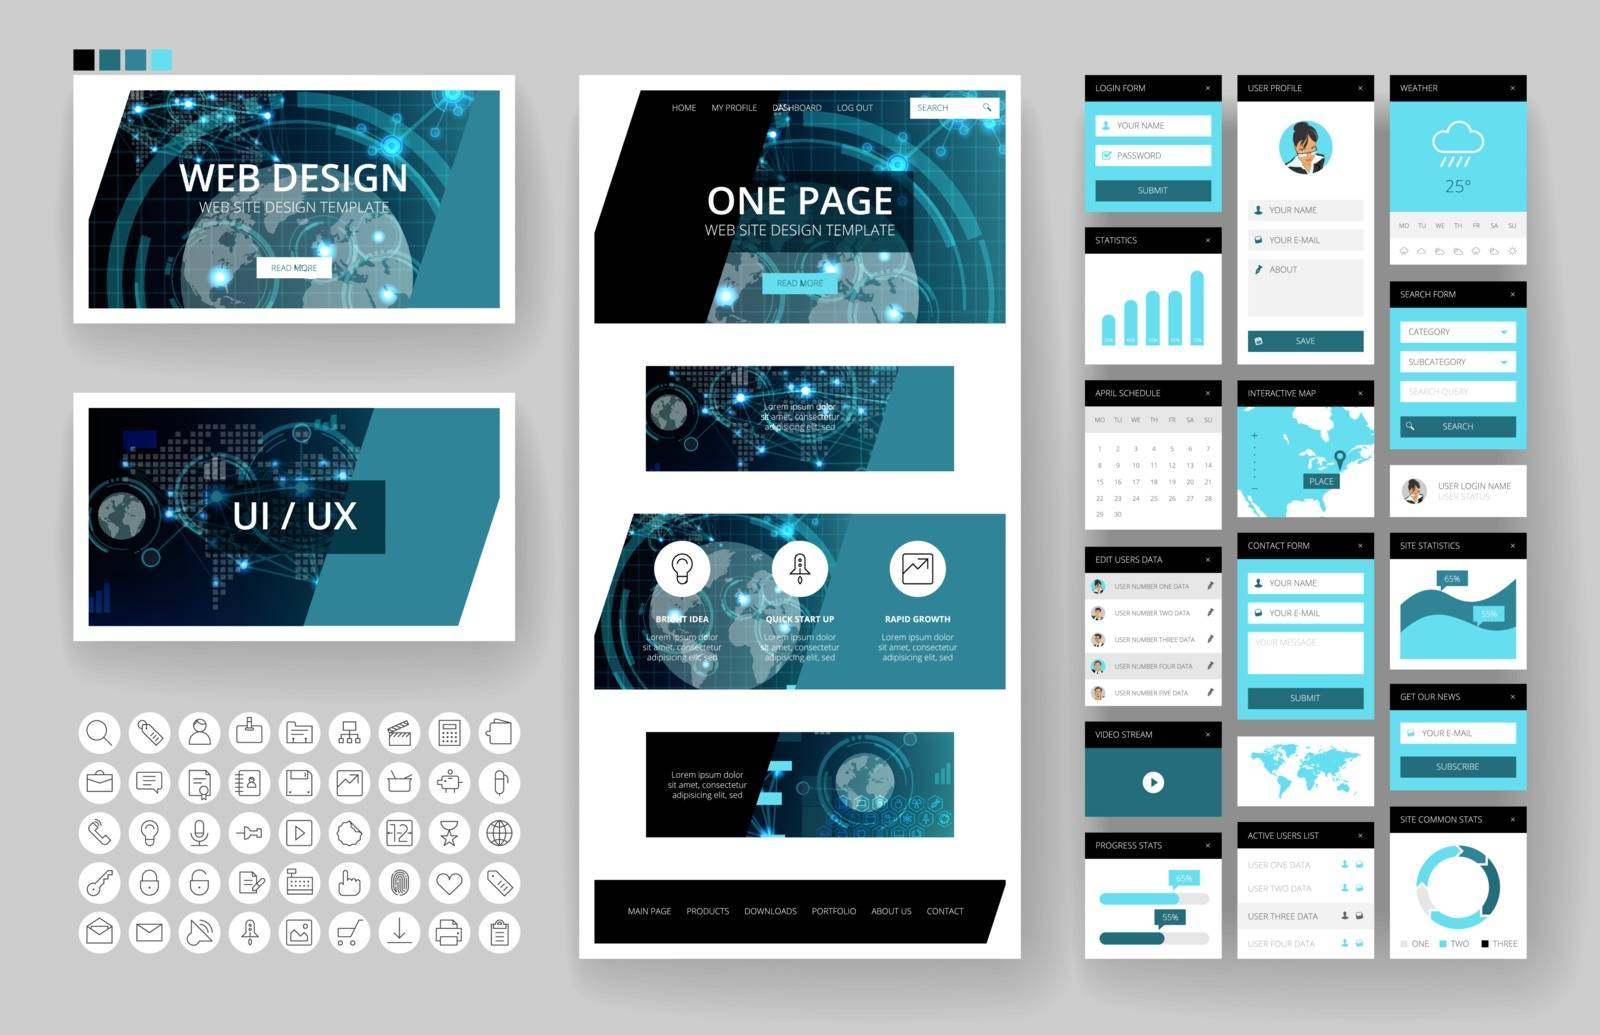 Website template, one page design, headers and interface elements. Technology HUD global connections backgrounds.